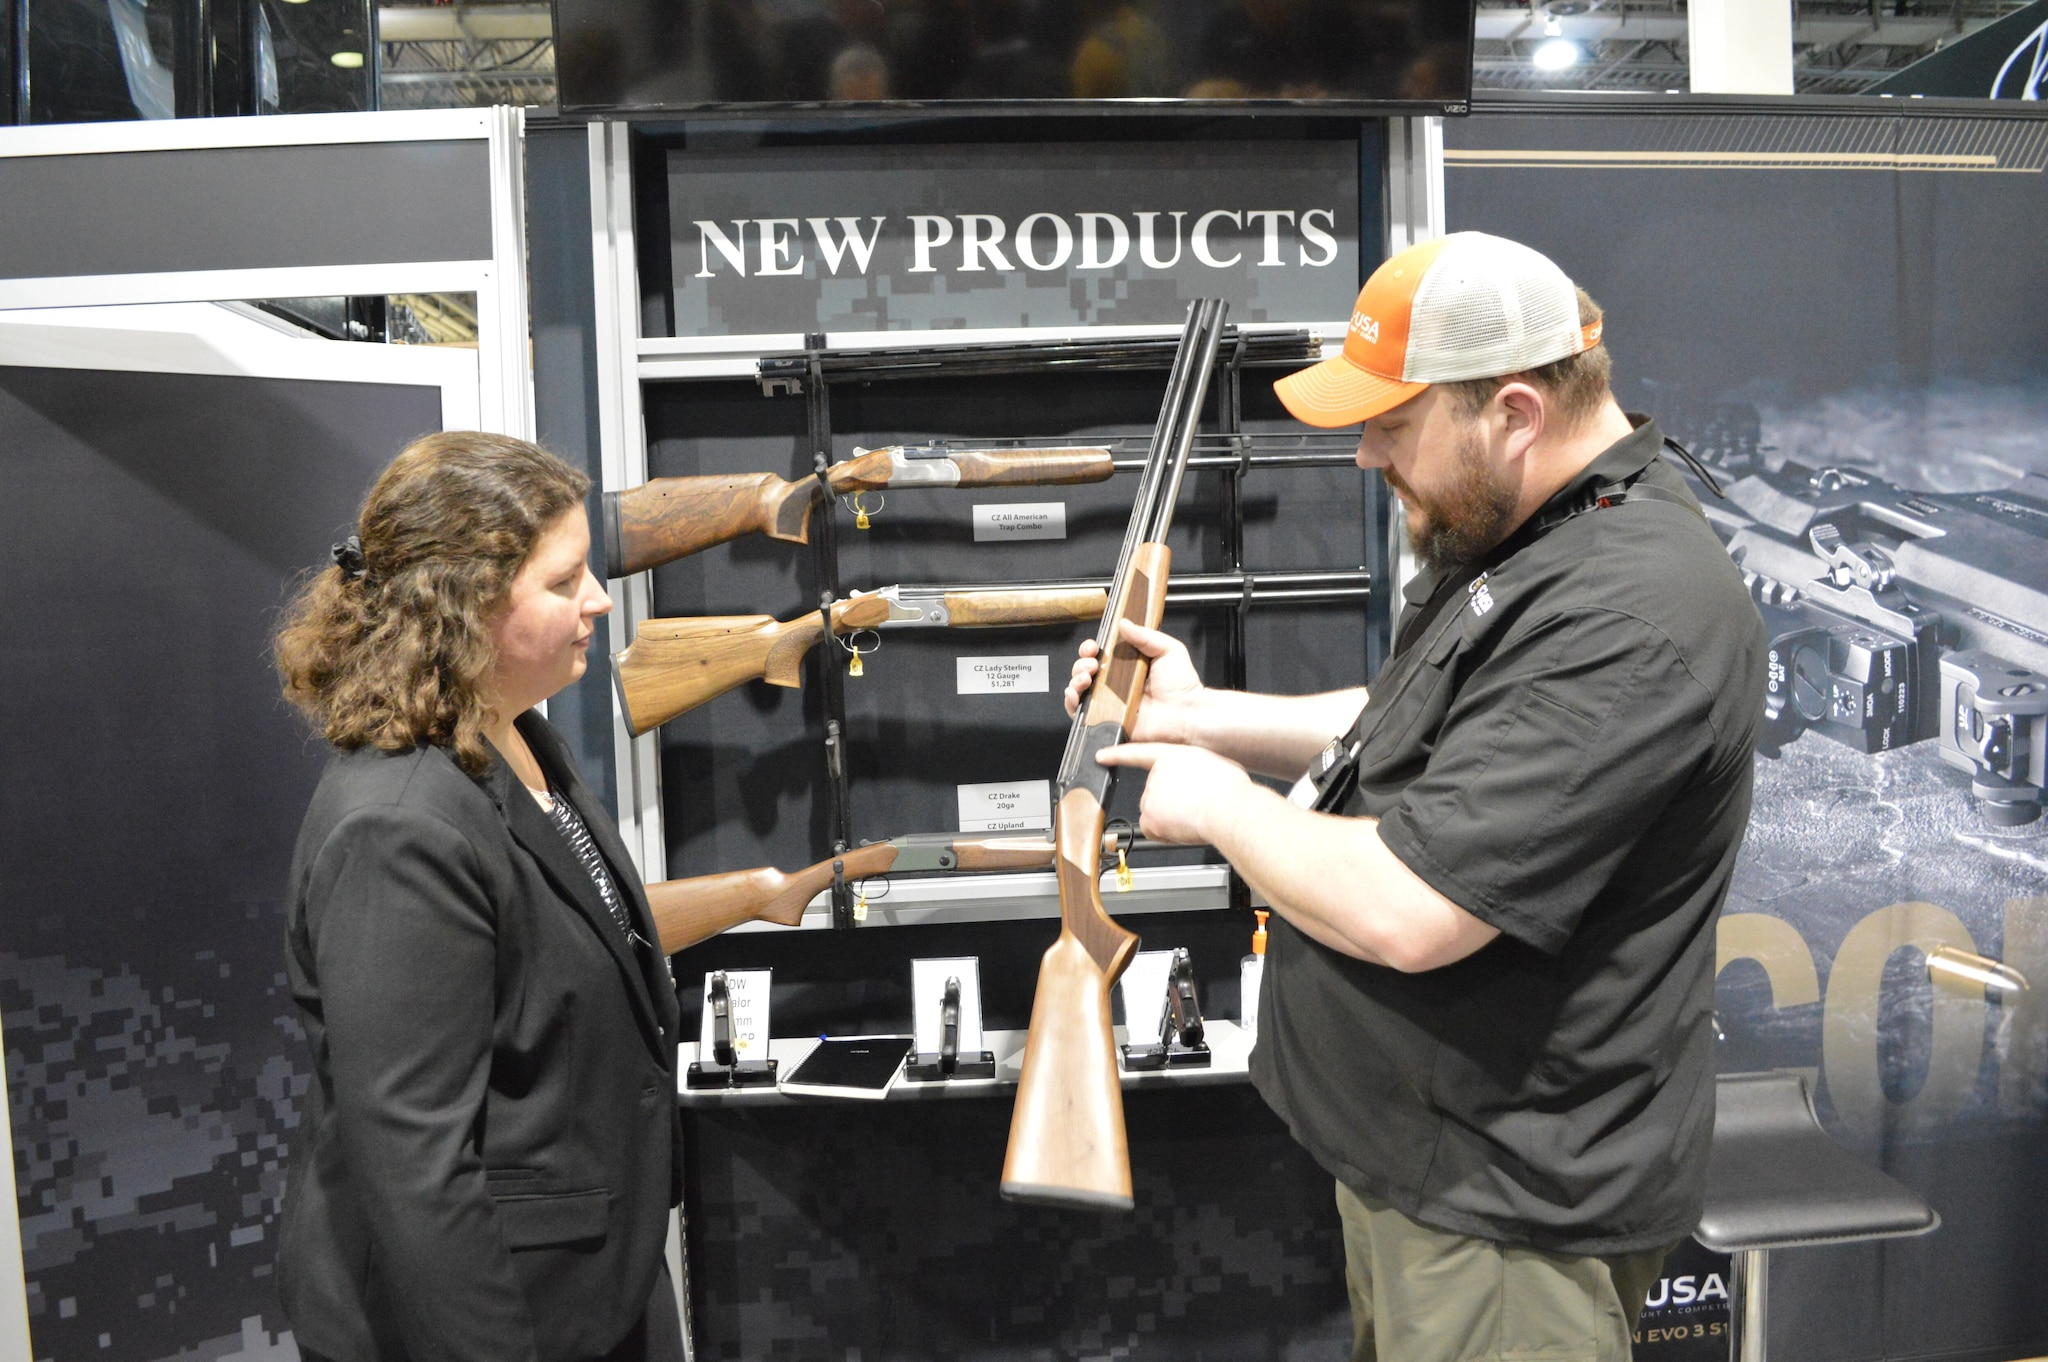 CZ rep Zach Hein explains the budget-friendly Drake O/U shotgun in both 12 and 20, built for hard use and cost-conscious buyers with an MSRP just over $600.